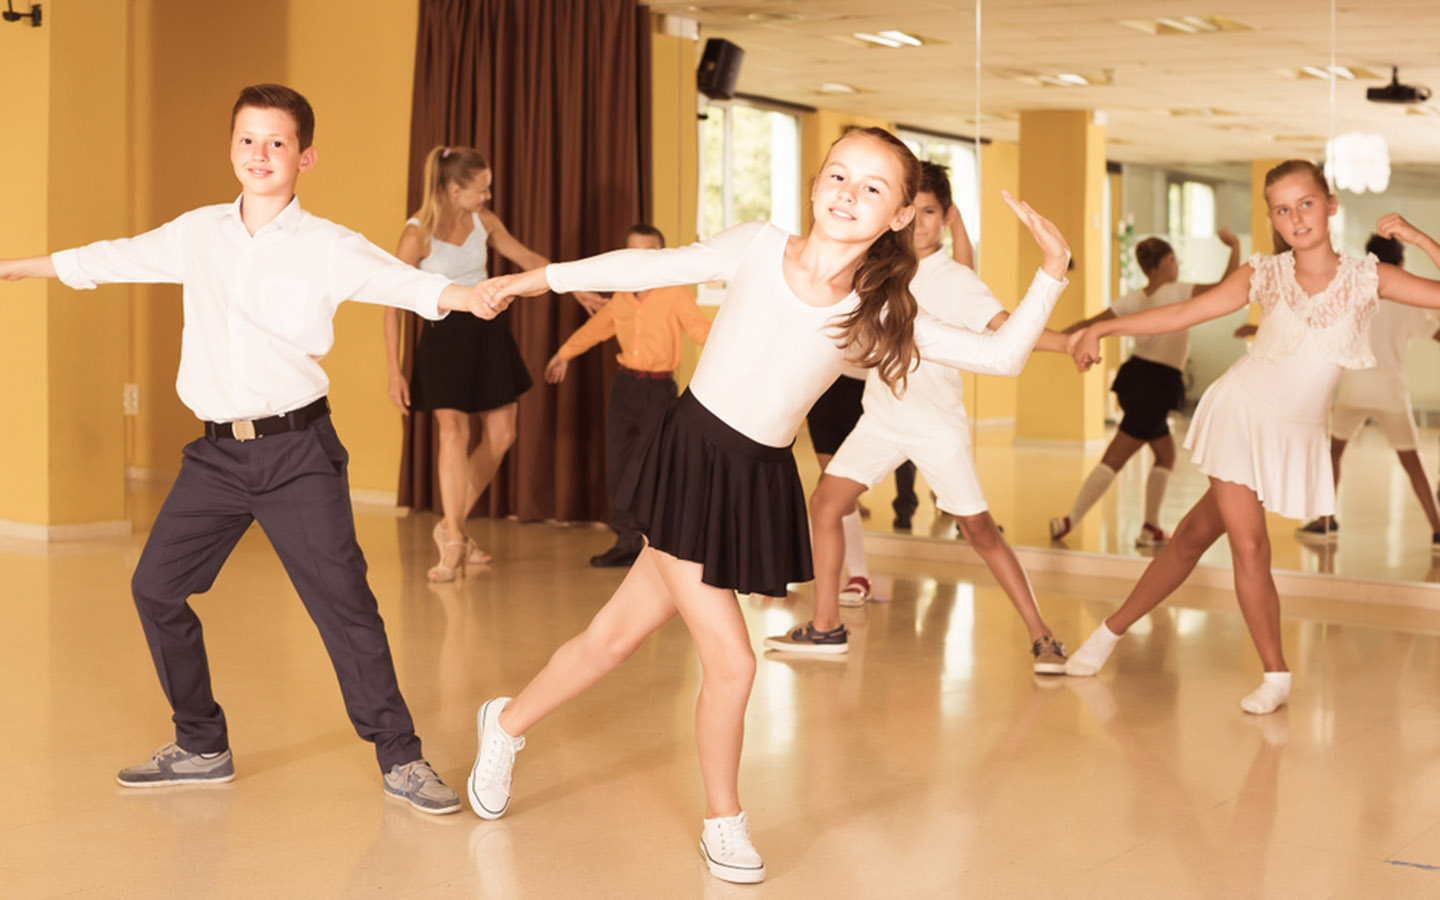 Children with their dance partners at a studio